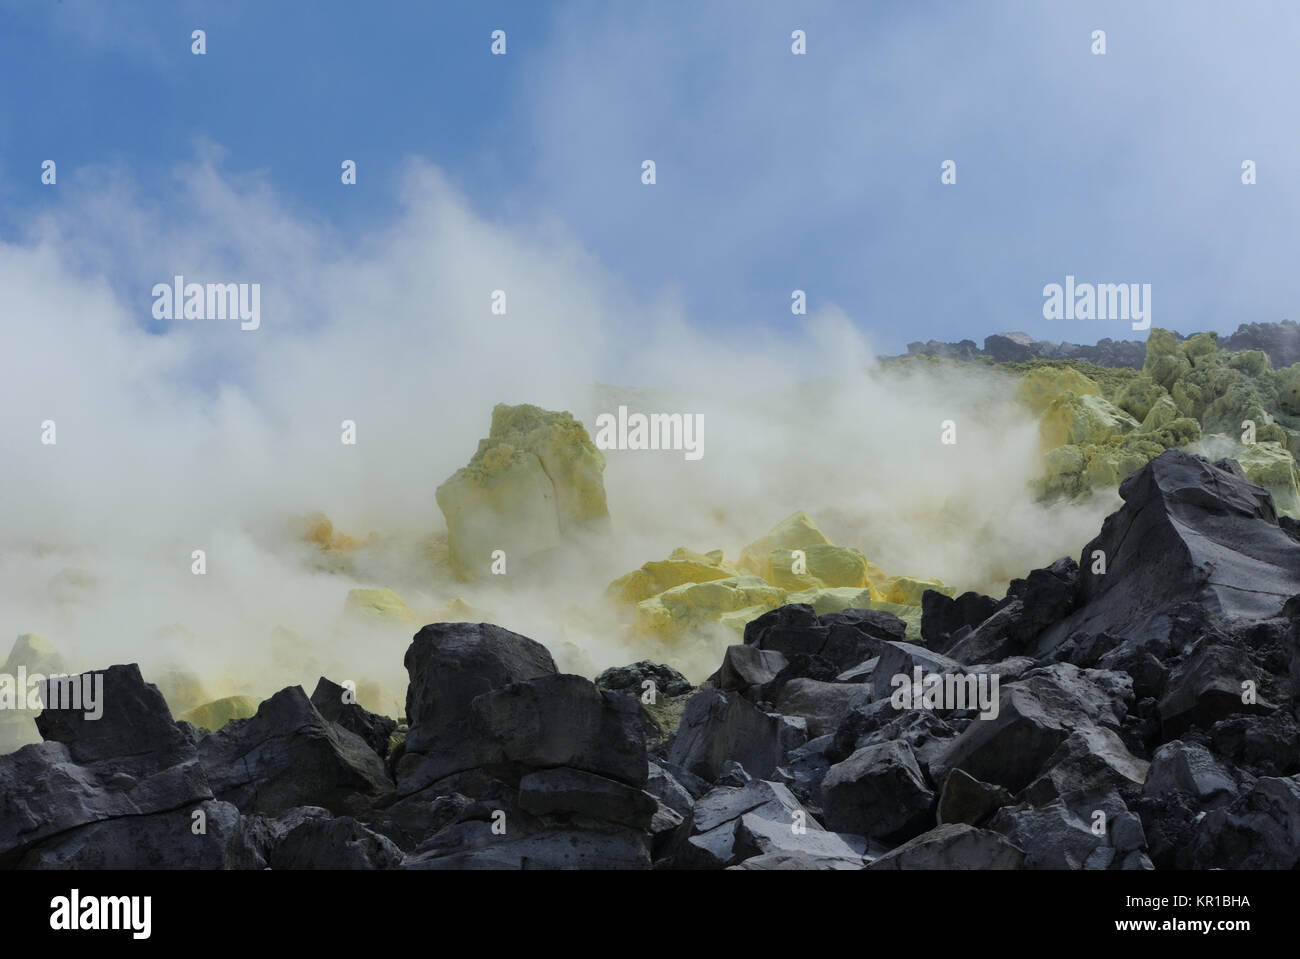 Clouds of sulphuric acid laden steam billow from active fumaroles and deposits of sulphur within the caldera of - Stock Image